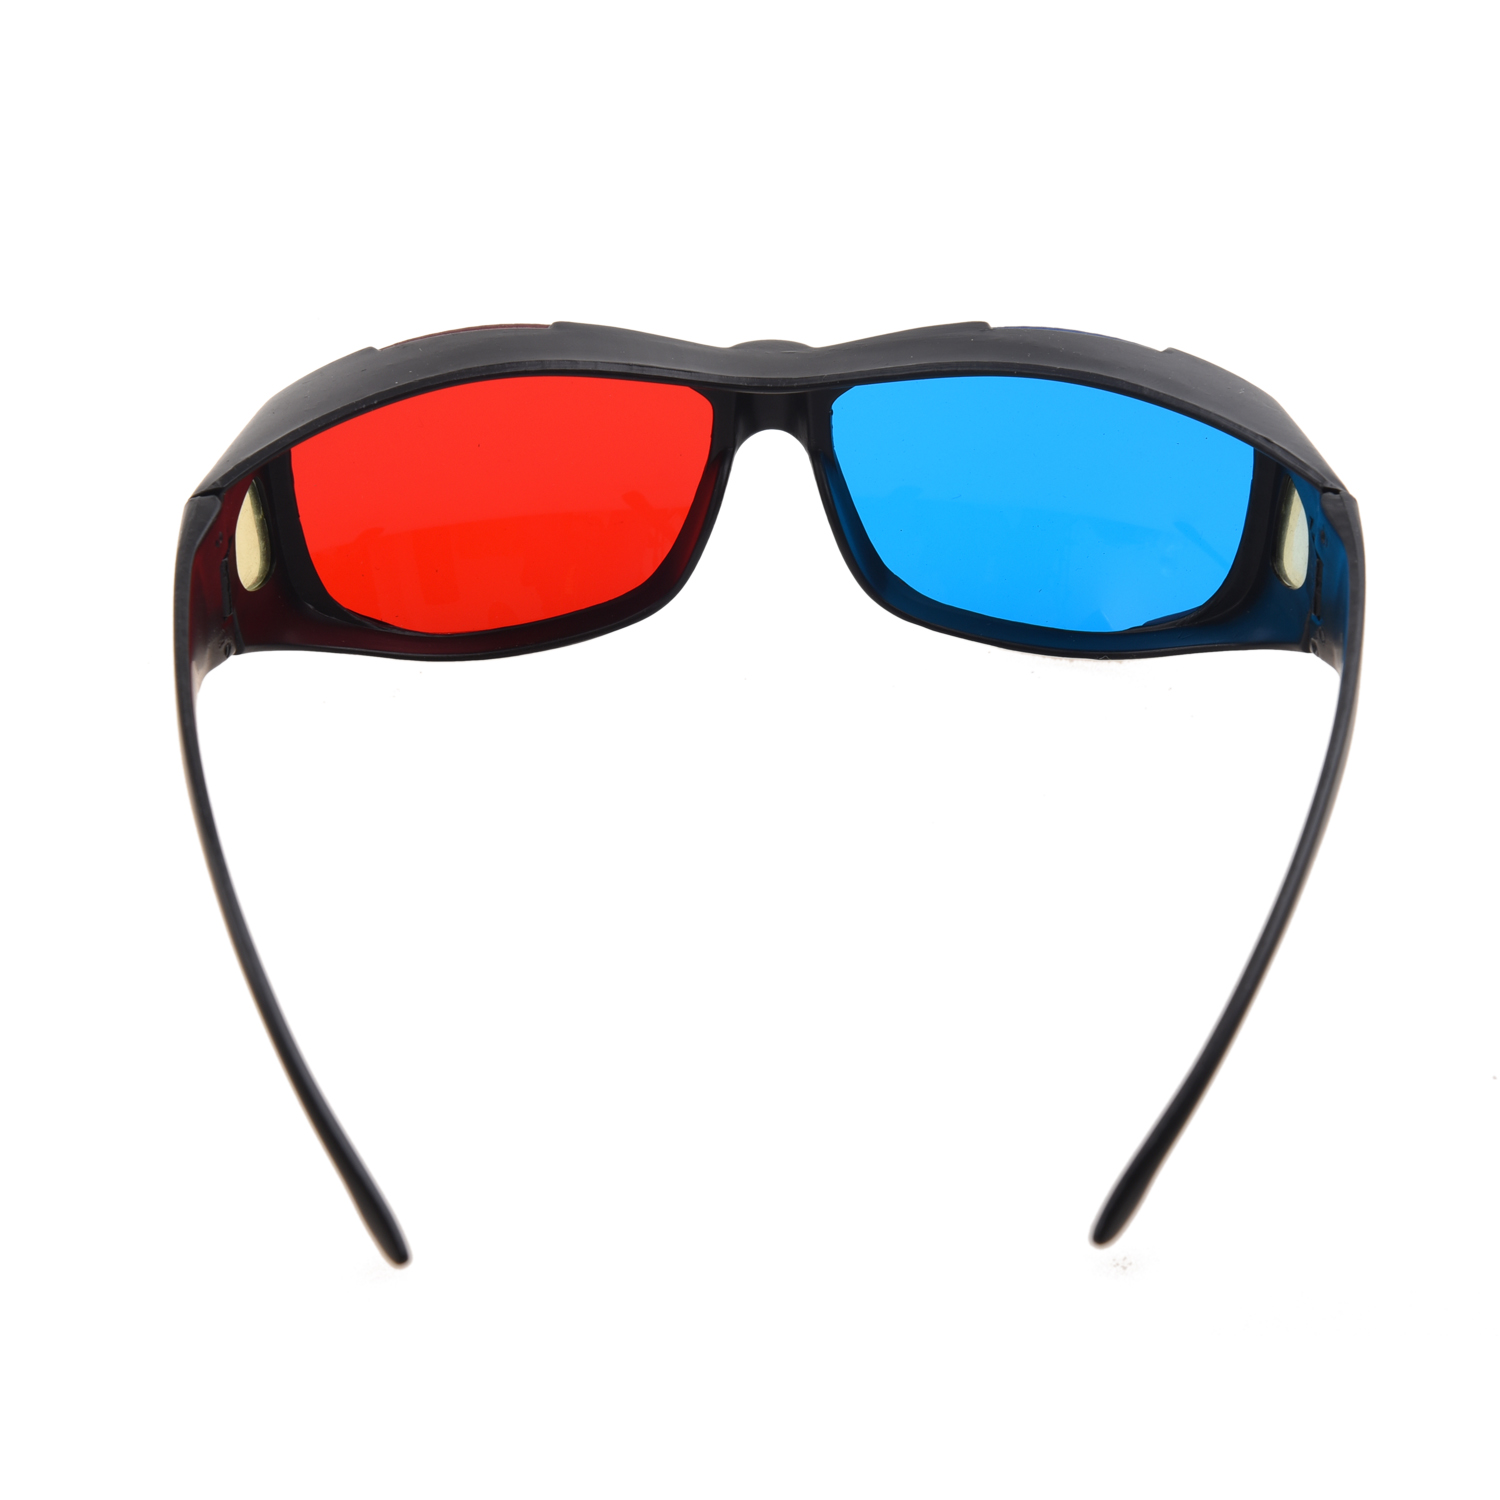 CES-New Plastic Framed Dimensional Anaglyph 3D Vision Glasses Plasma TV Movie